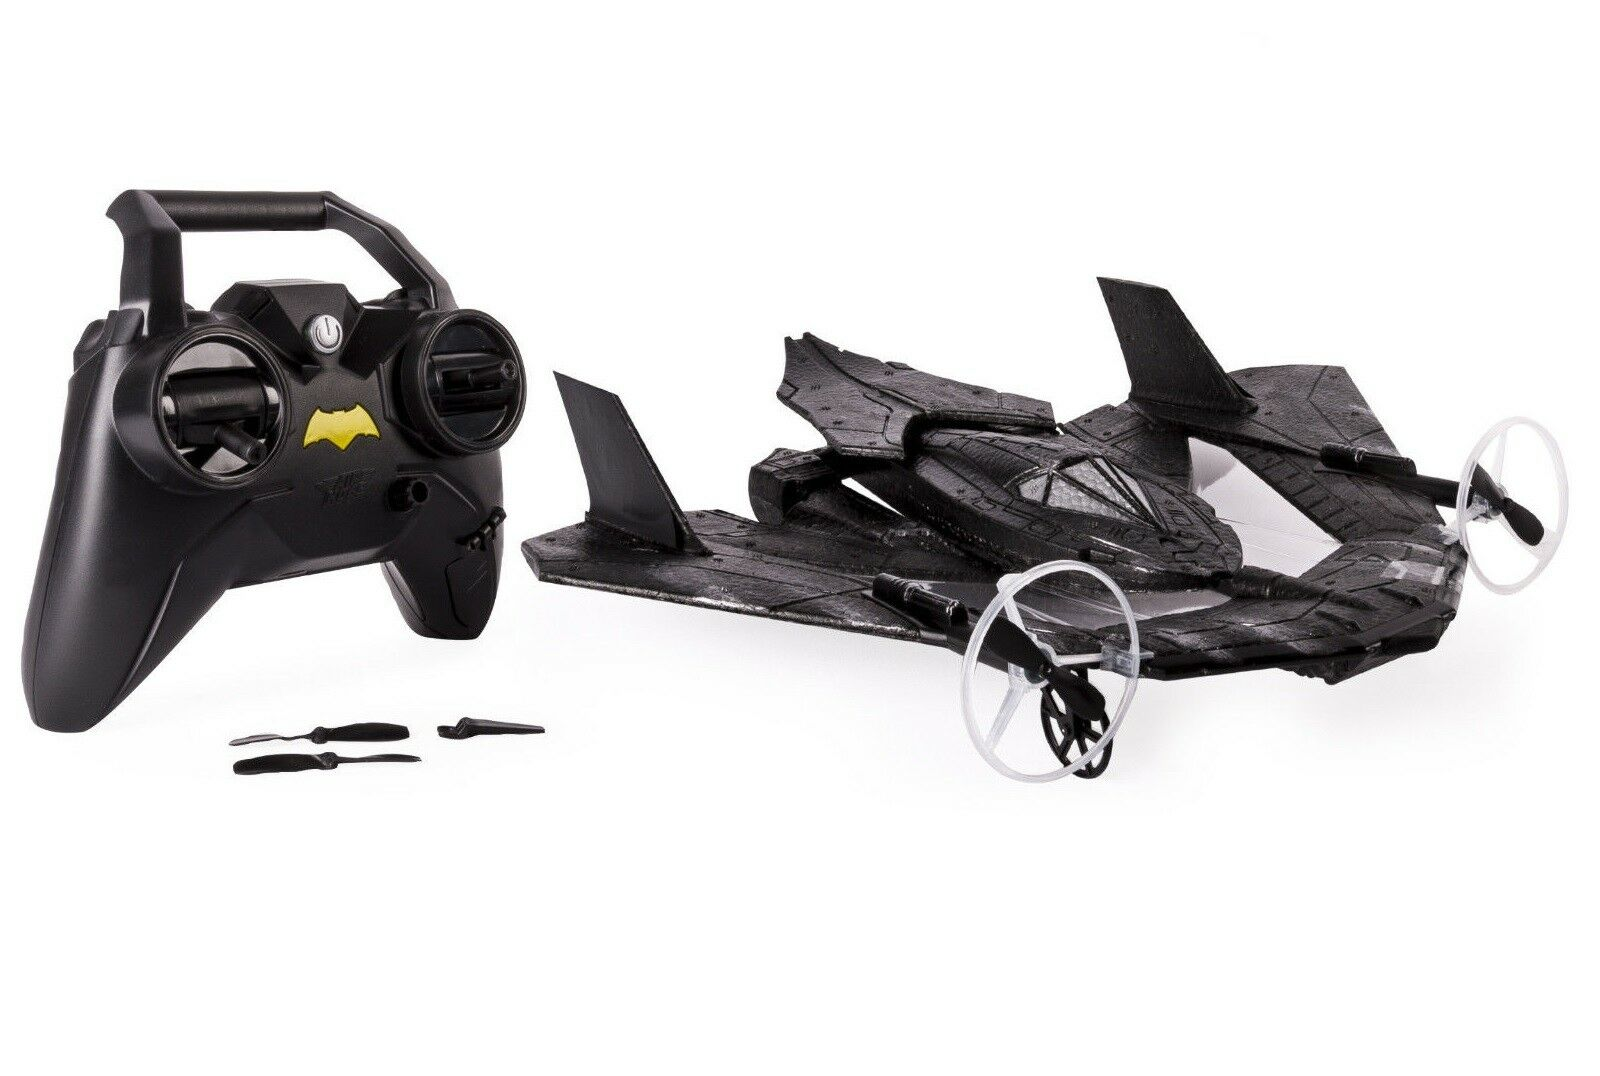 Air Hogs BatWing Batman vs Superman RC Plane NEW Flying Toy  2.4GHz Wireless